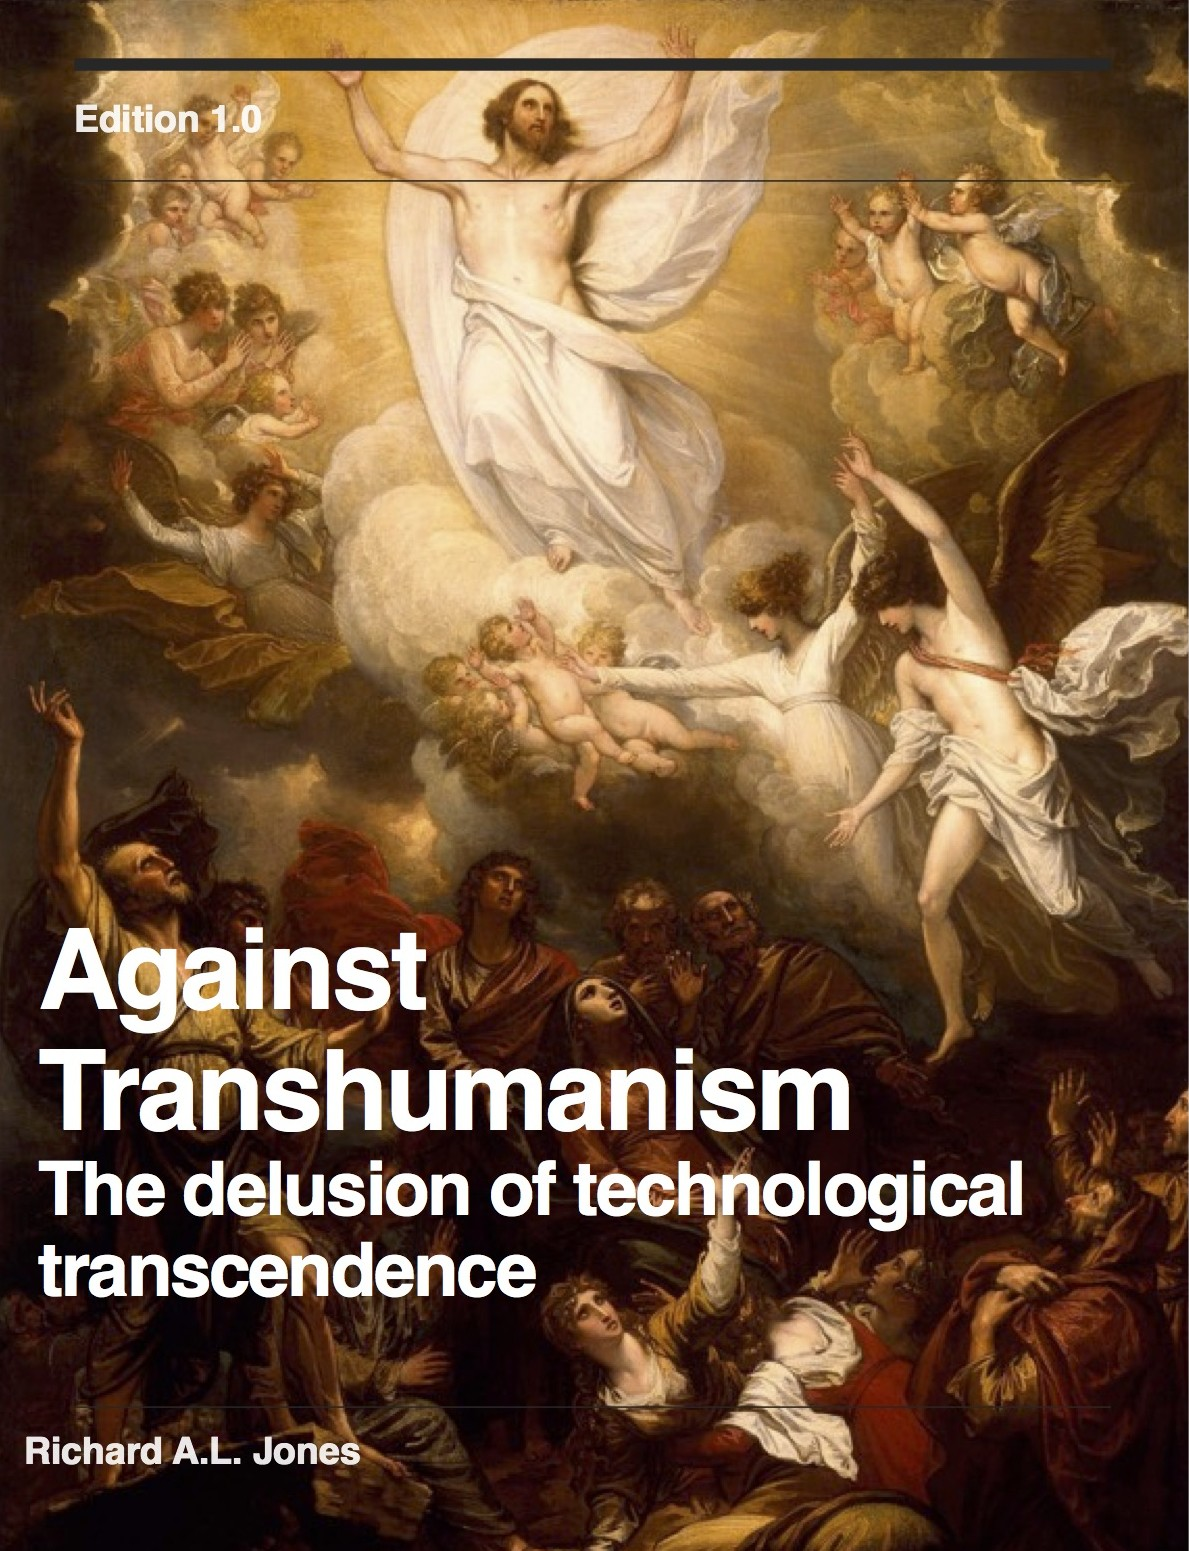 Against_Transhumanism_1.0 cover